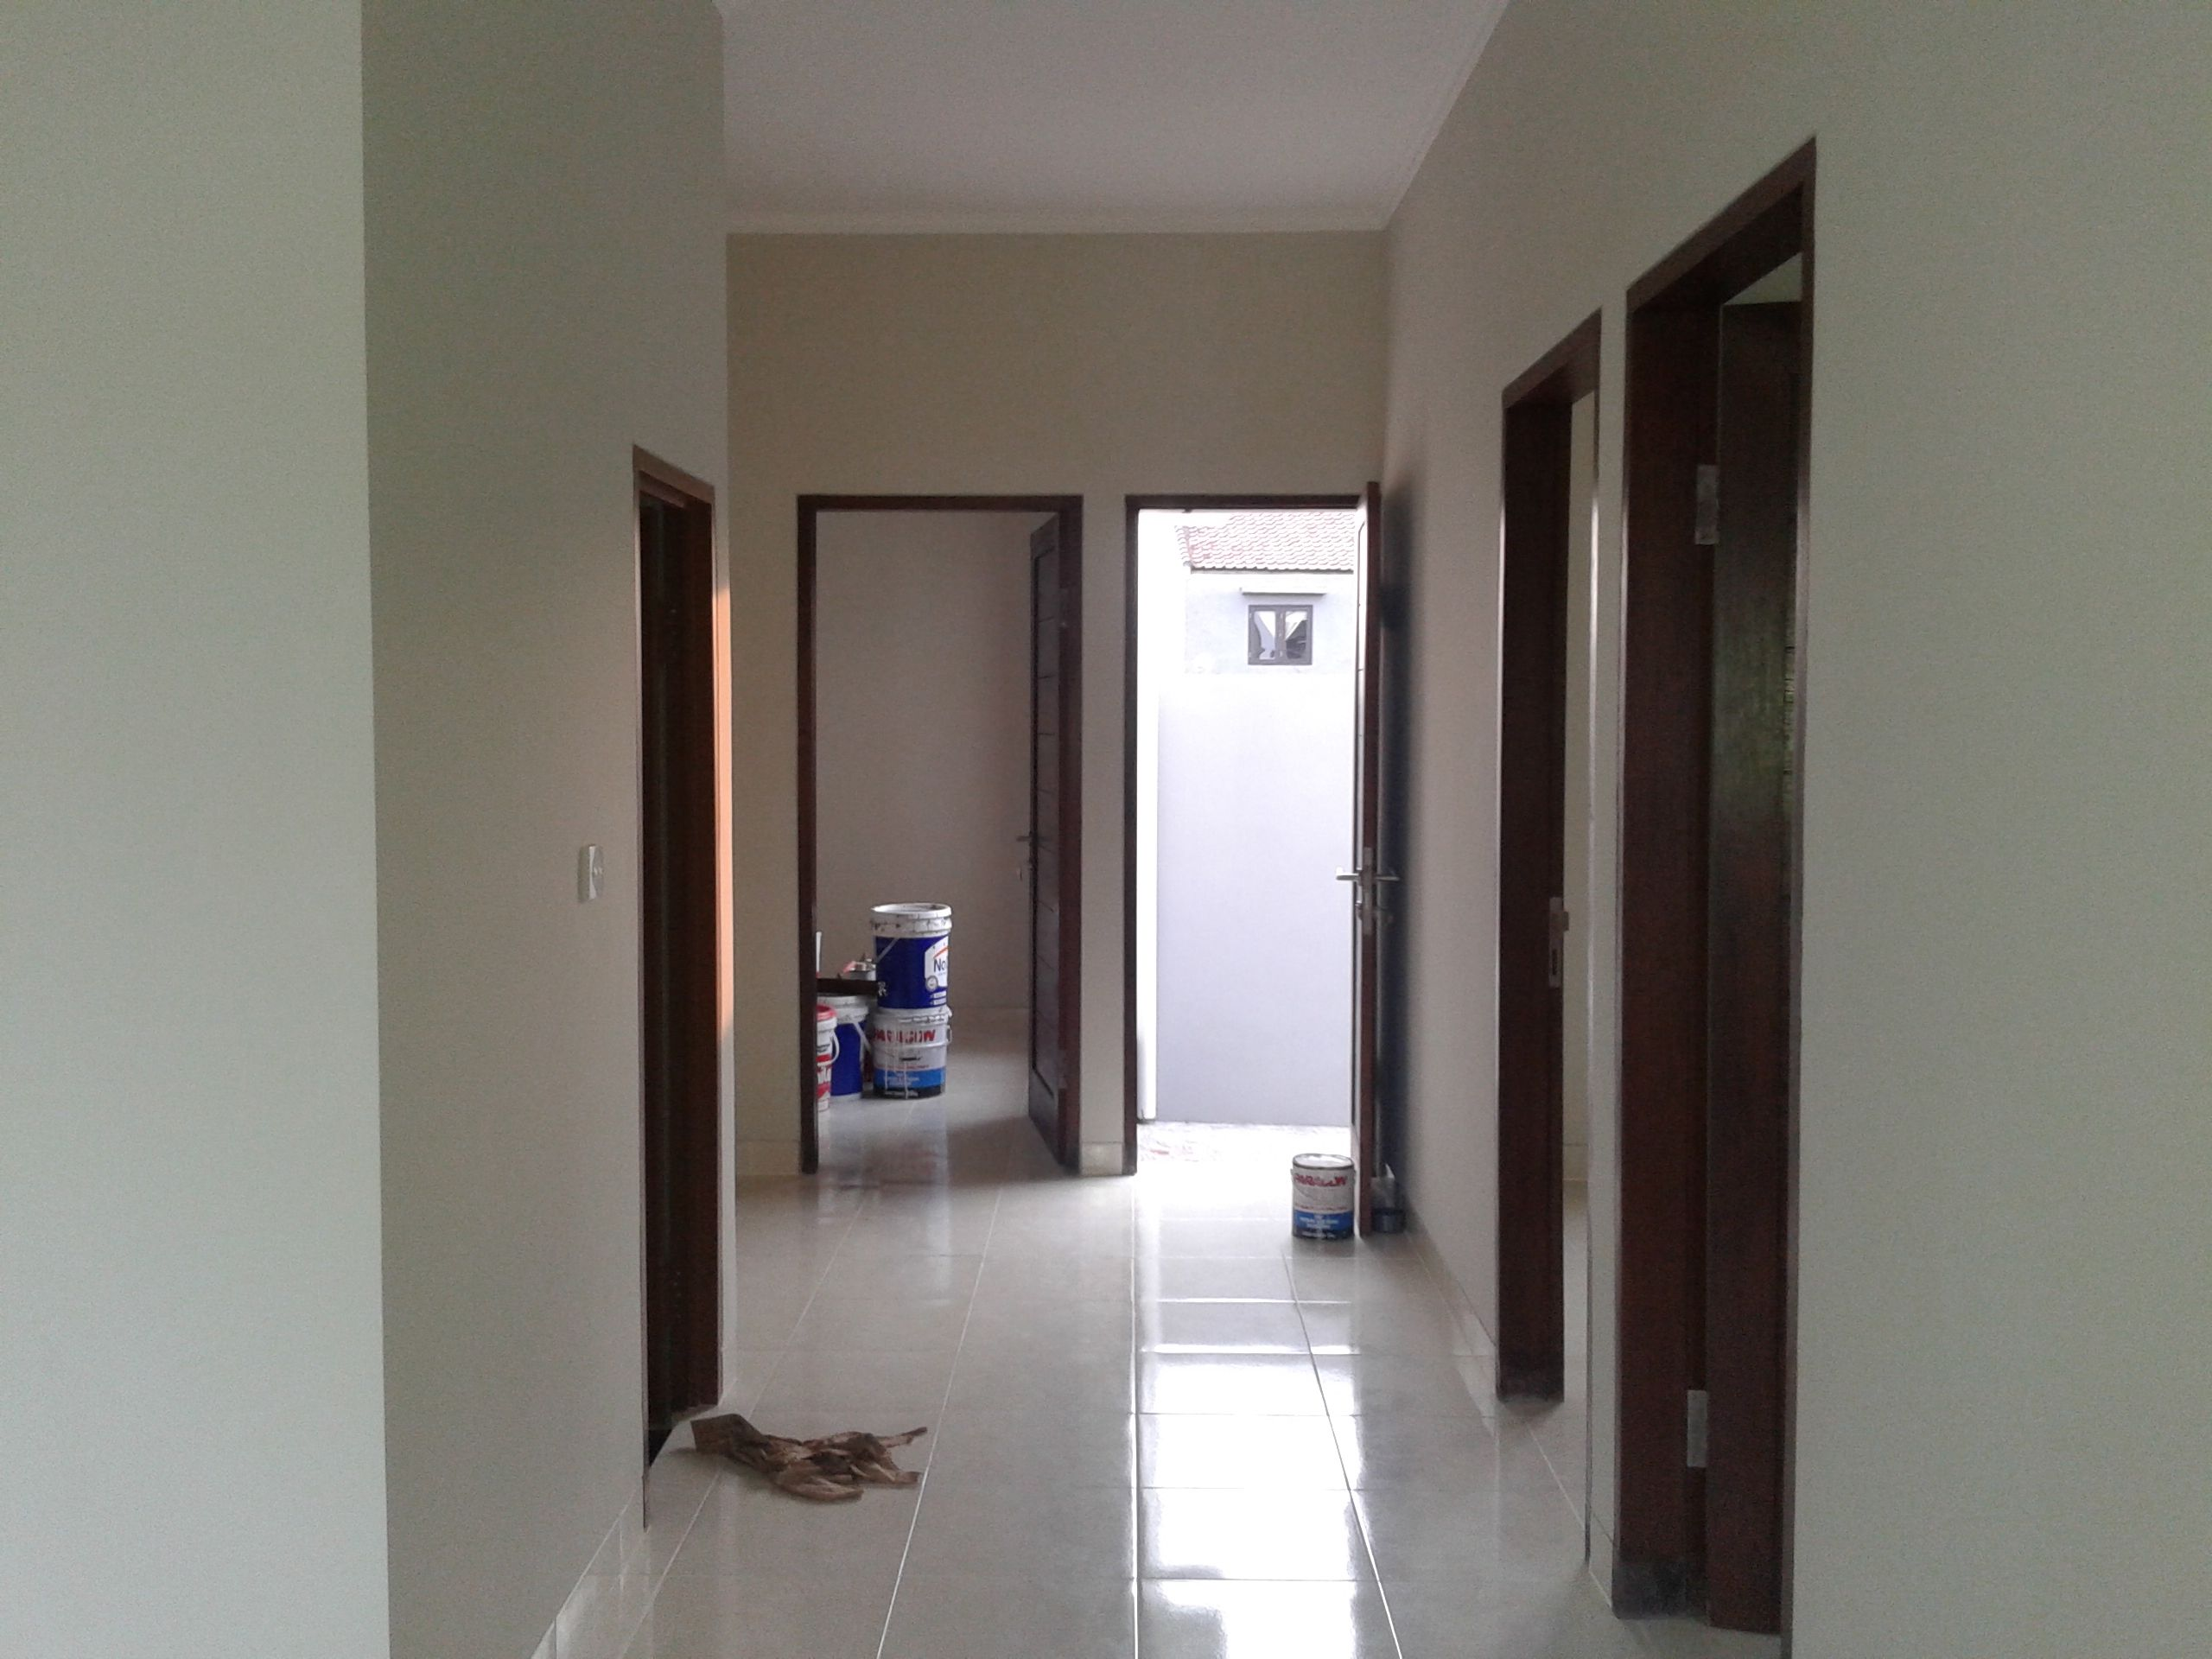 For Sale New House Minimalis Ready Type 63 100 Sqm Build Size 63 Sqm Land Size 100 Sqm 3 Bedrooms Living Rooms Kitchen Bathroom Terrace Garage Minimalis